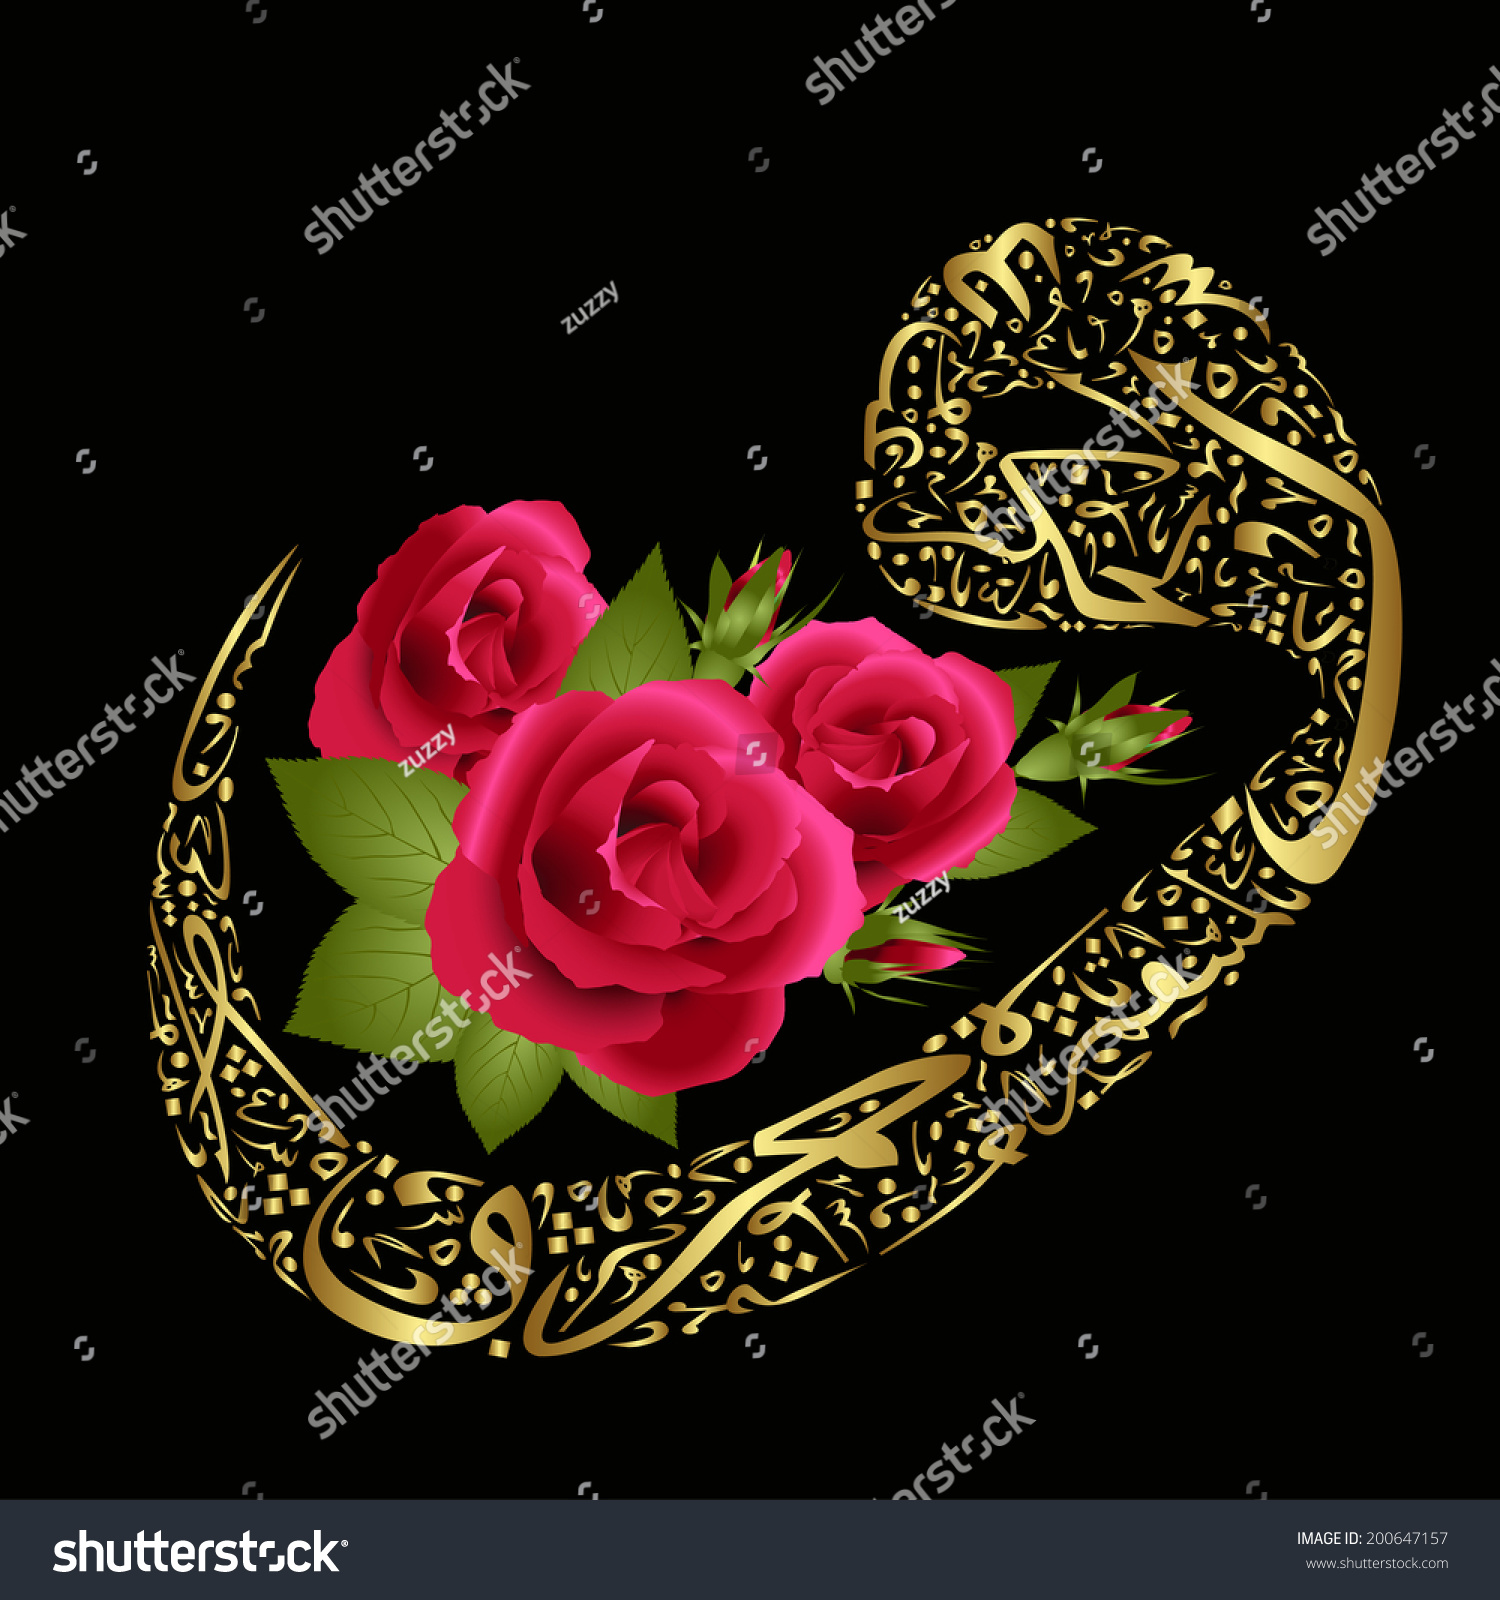 Rose decoration and calligraphy arabic letters stock for Arabic calligraphy decoration